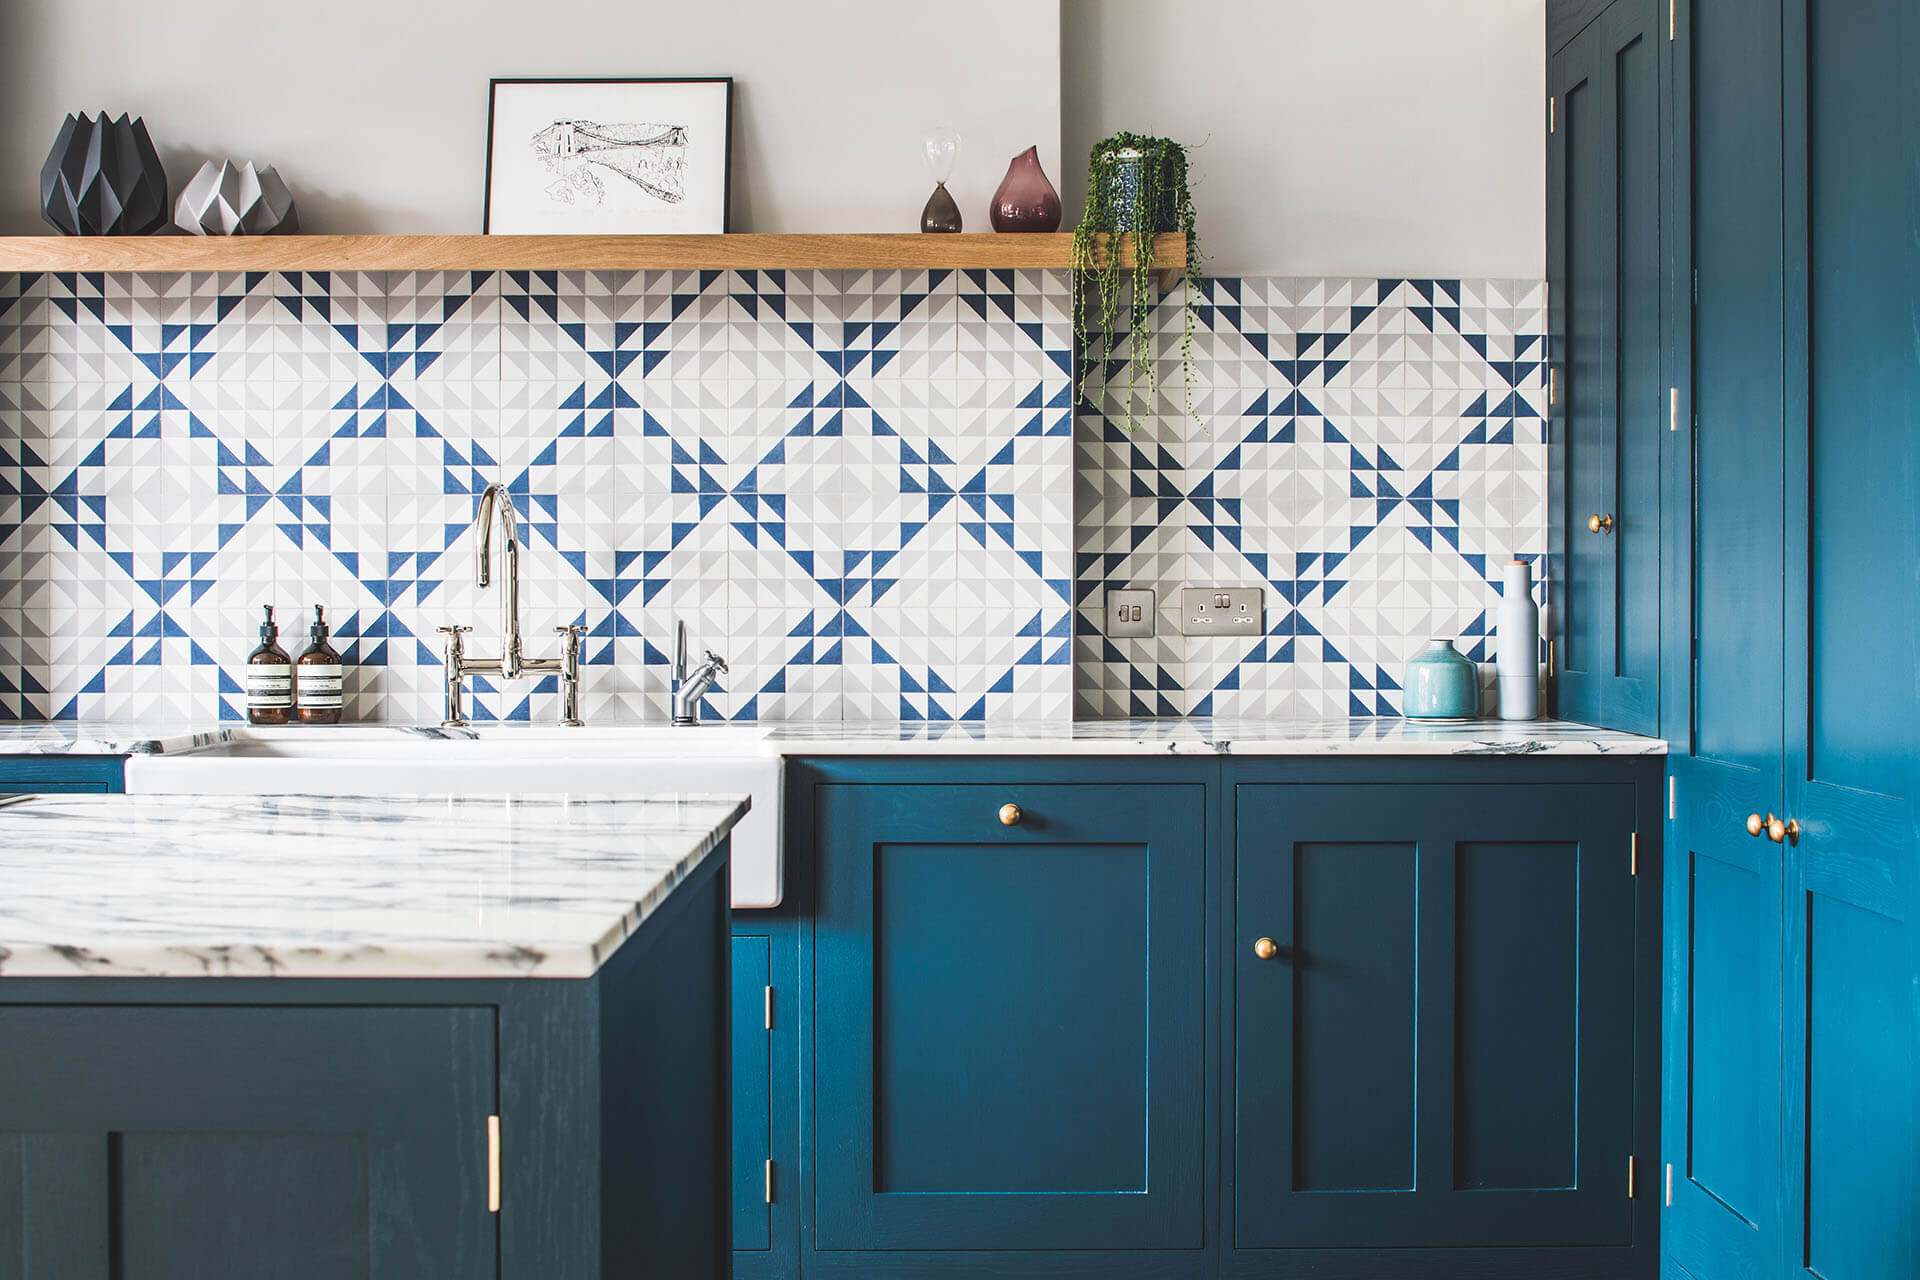 Dark blue geometric kitchen with honed Arabascato marble and Bert & May geometric tiles